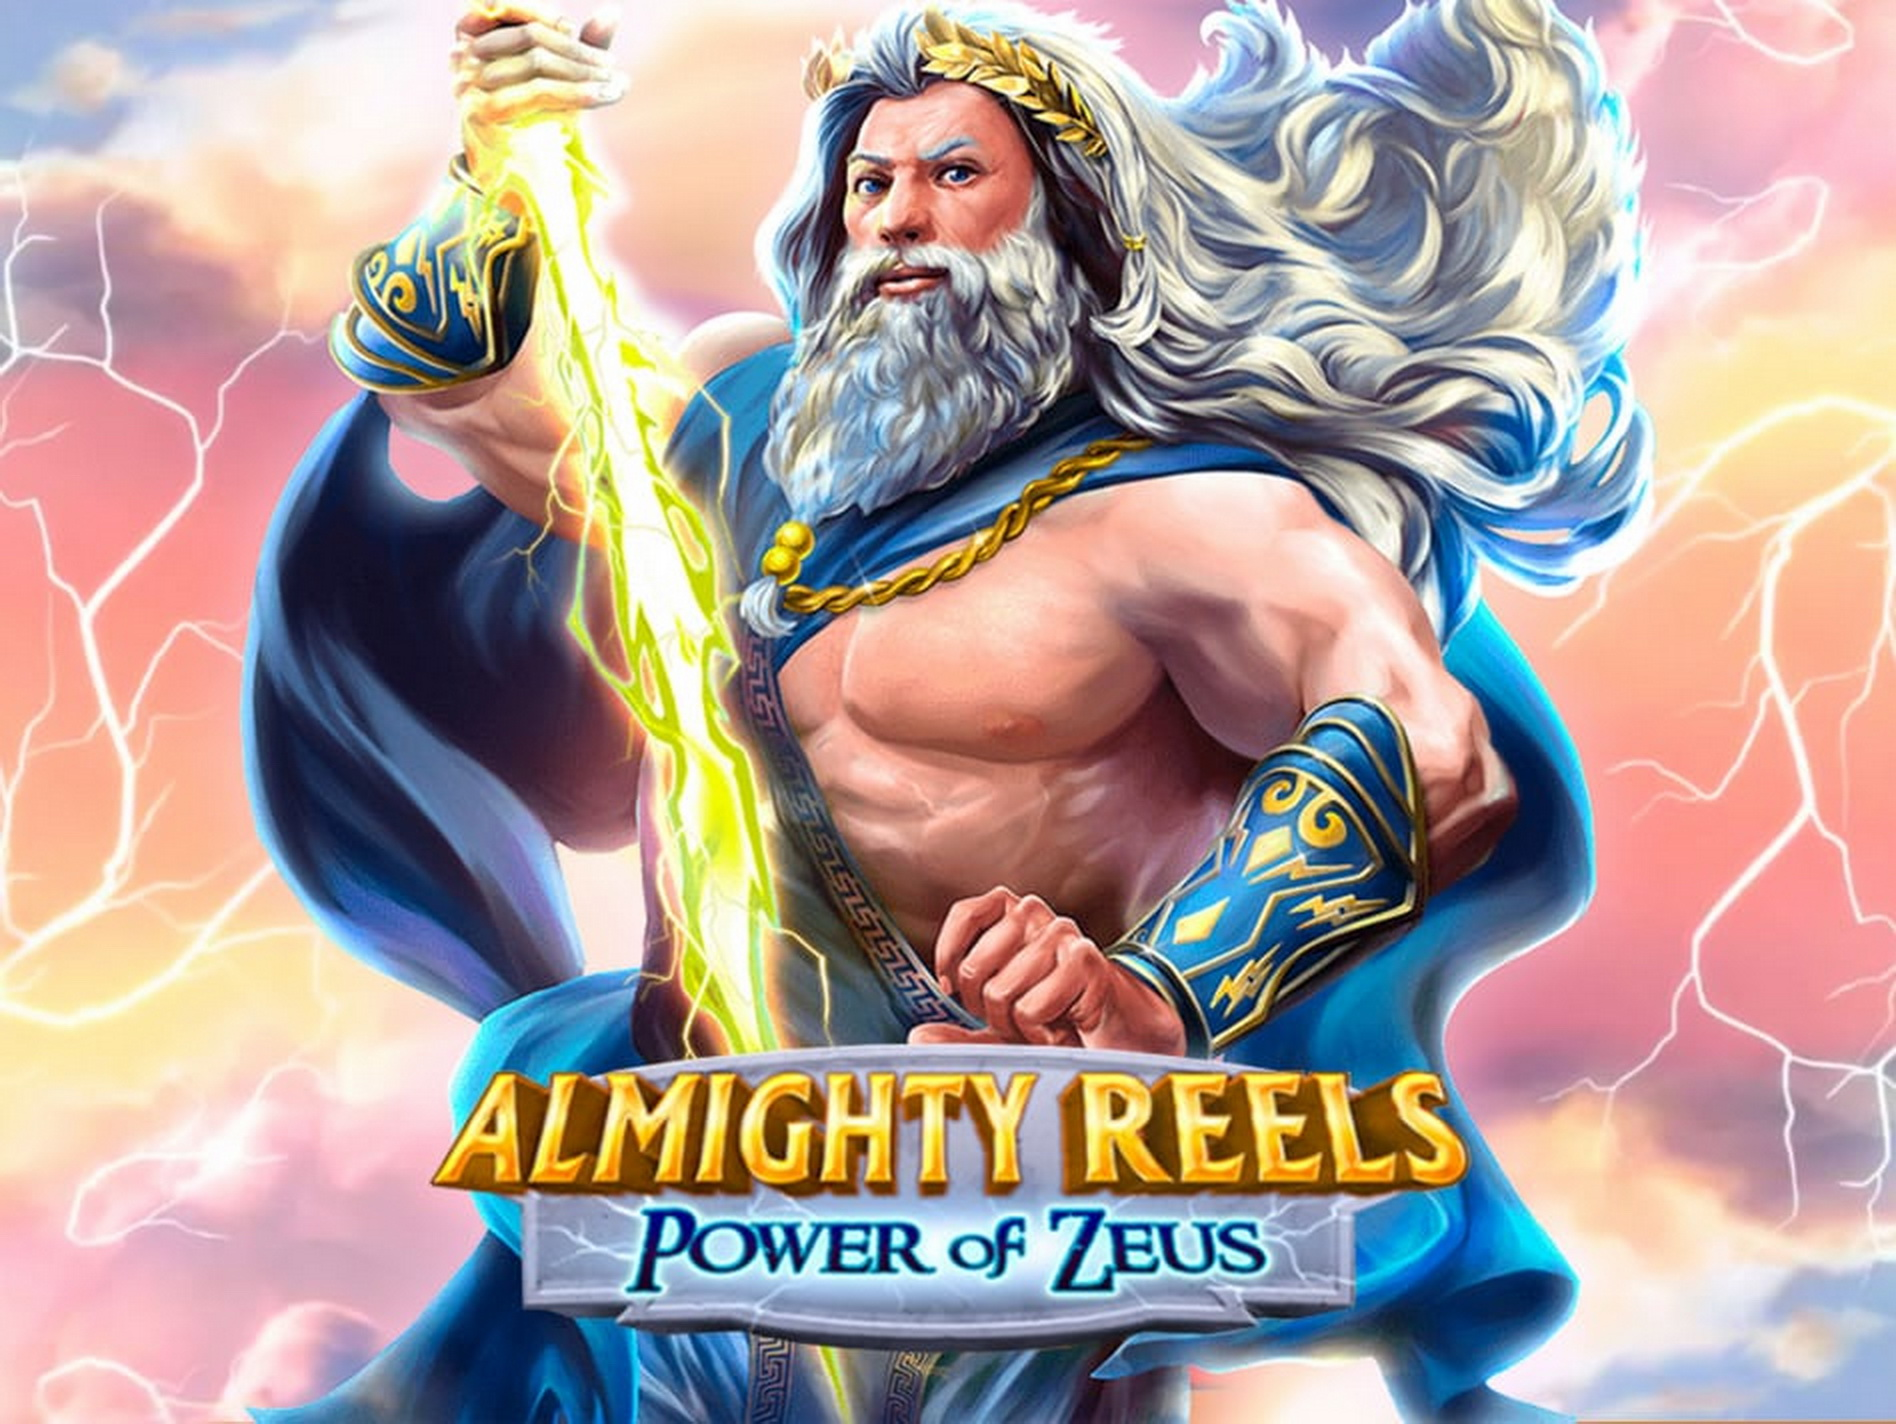 Reels in Almighty Reels Power of Zeus Slot Game by Novomatic